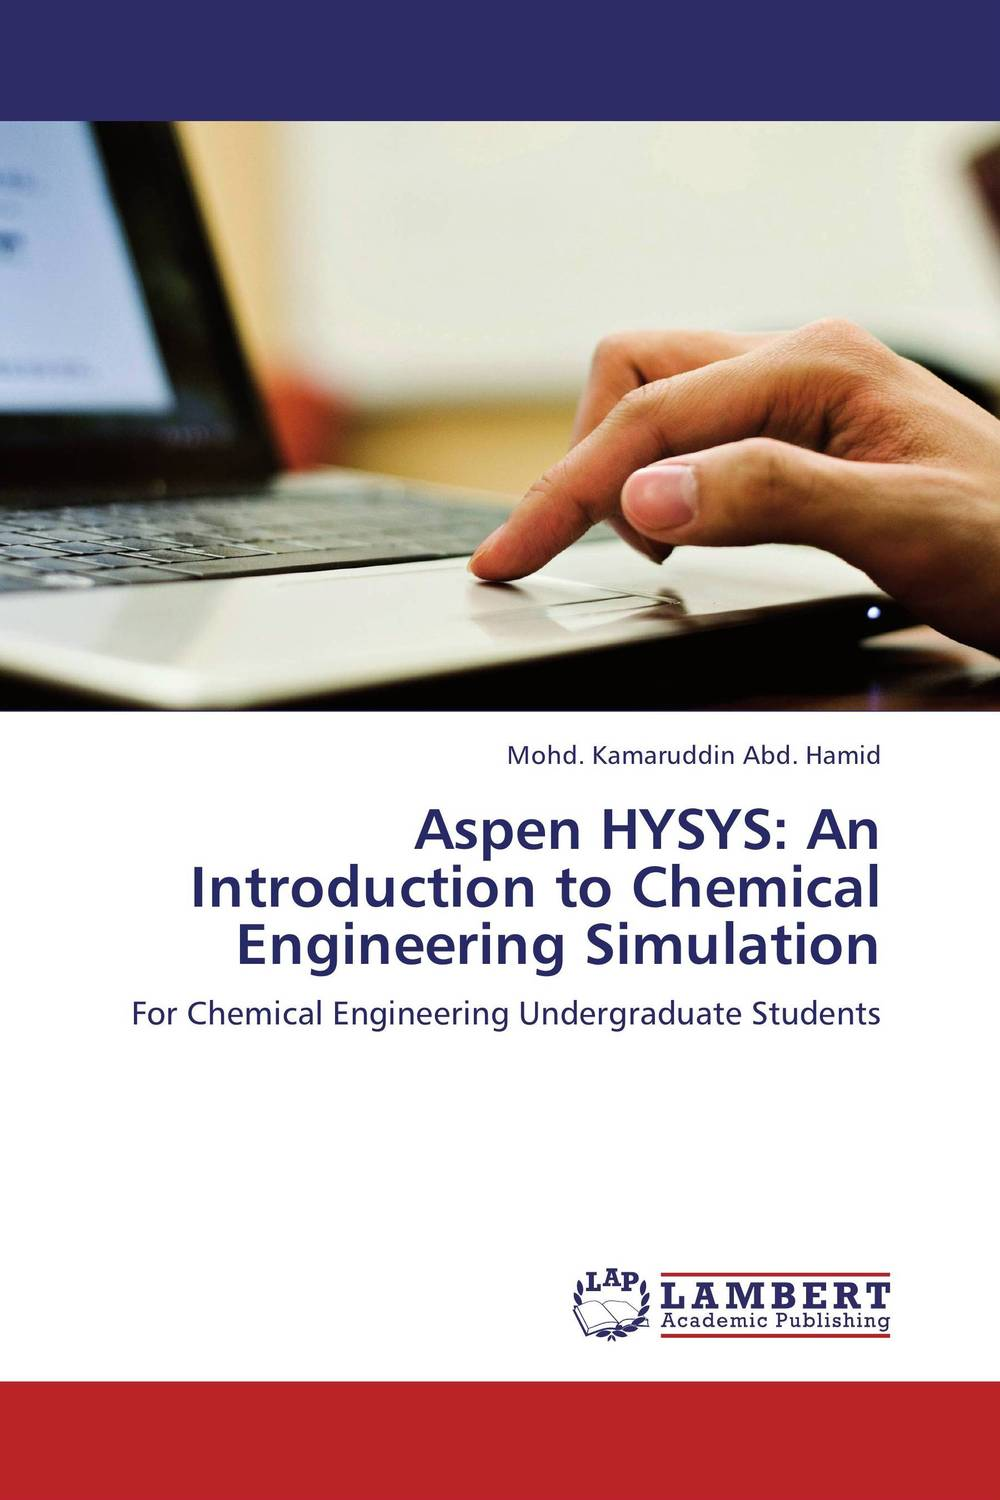 Aspen HYSYS: An Introduction to Chemical Engineering Simulation introduction to chemical engineering analysis